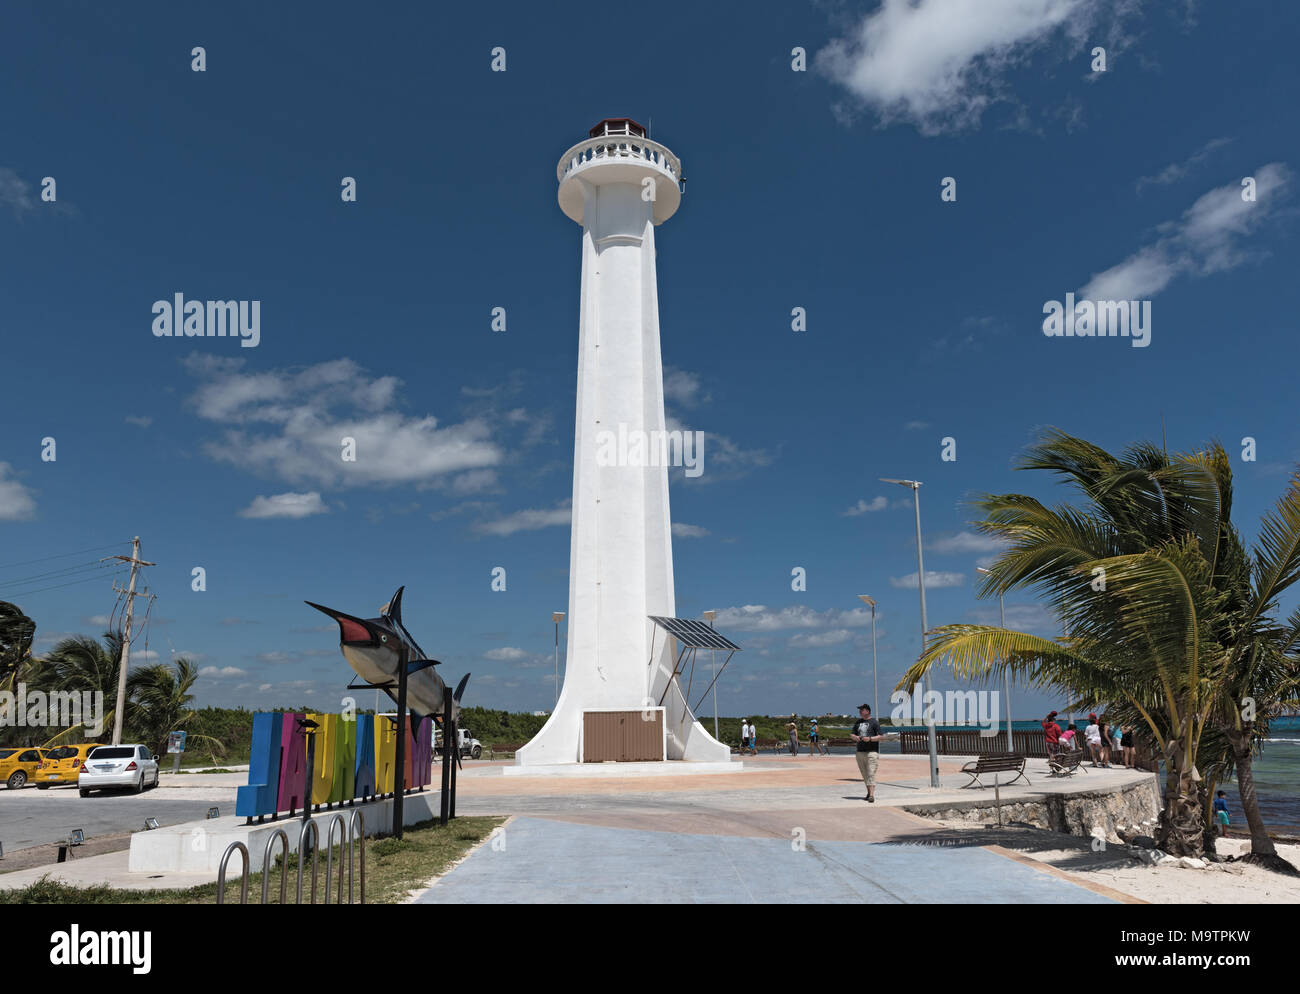 Lighthouse with colored lettering of tourist resort Mahahual with marlin fish, Mexico - Stock Image